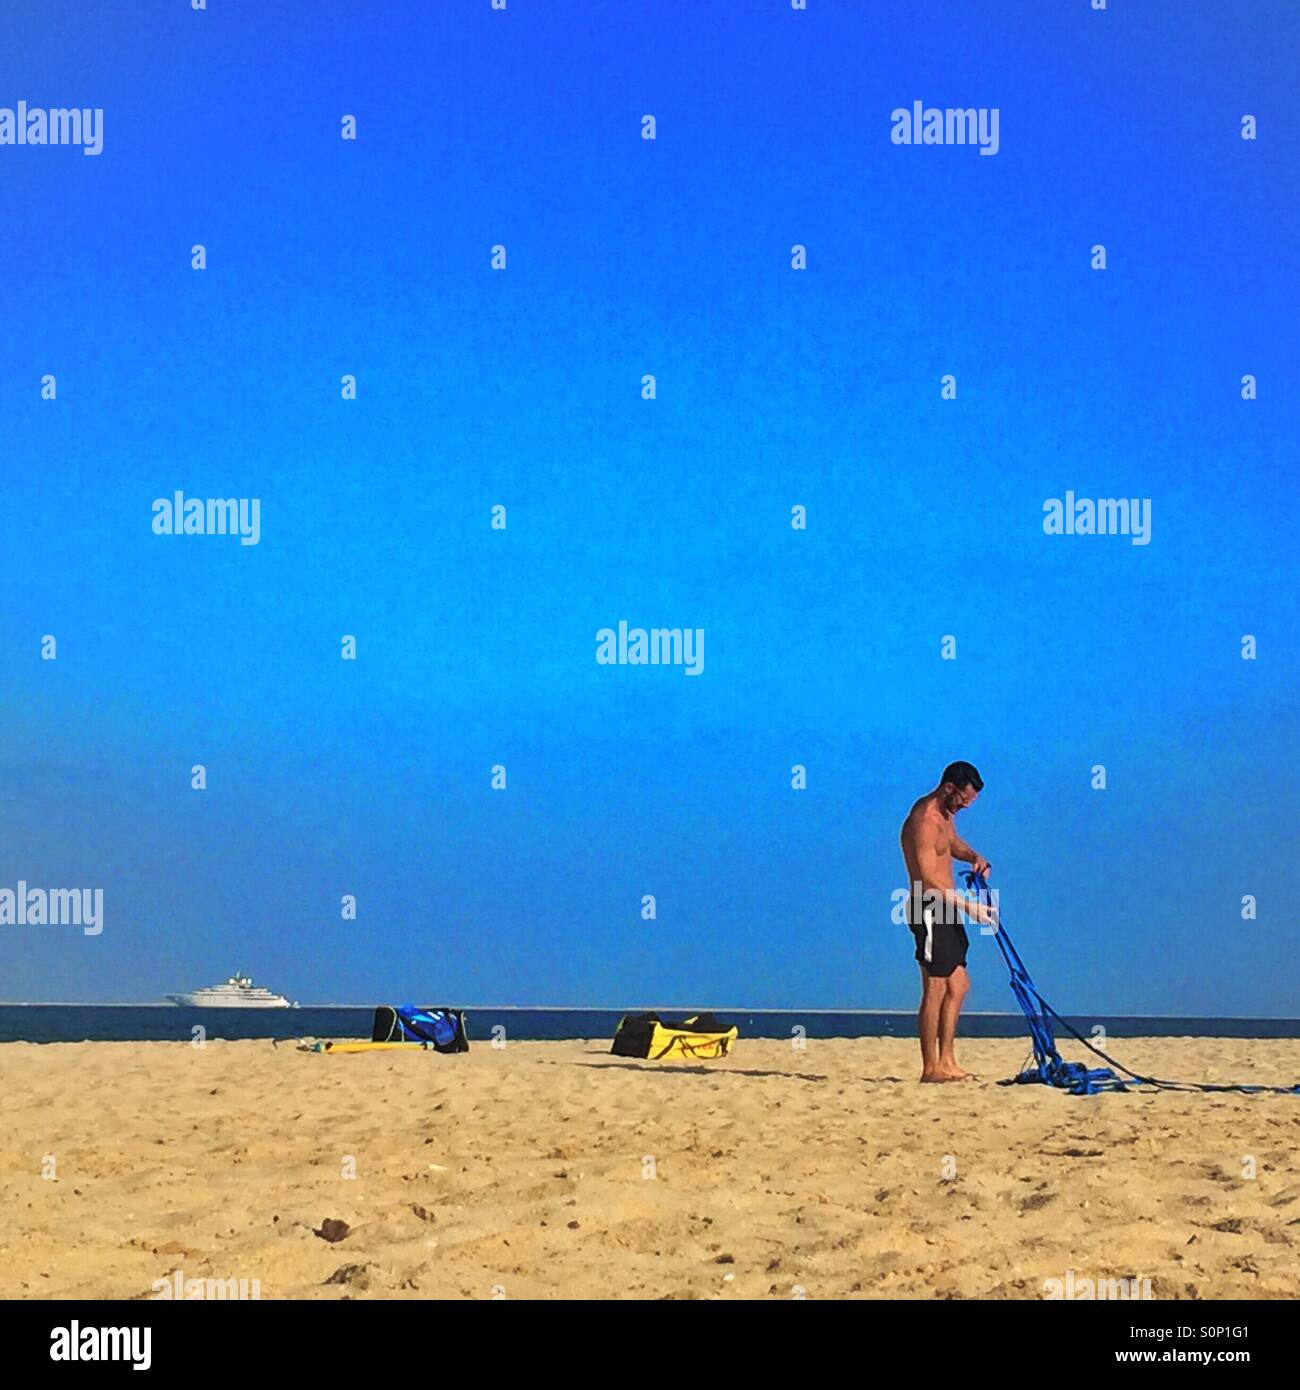 A day on the beach - Stock Image